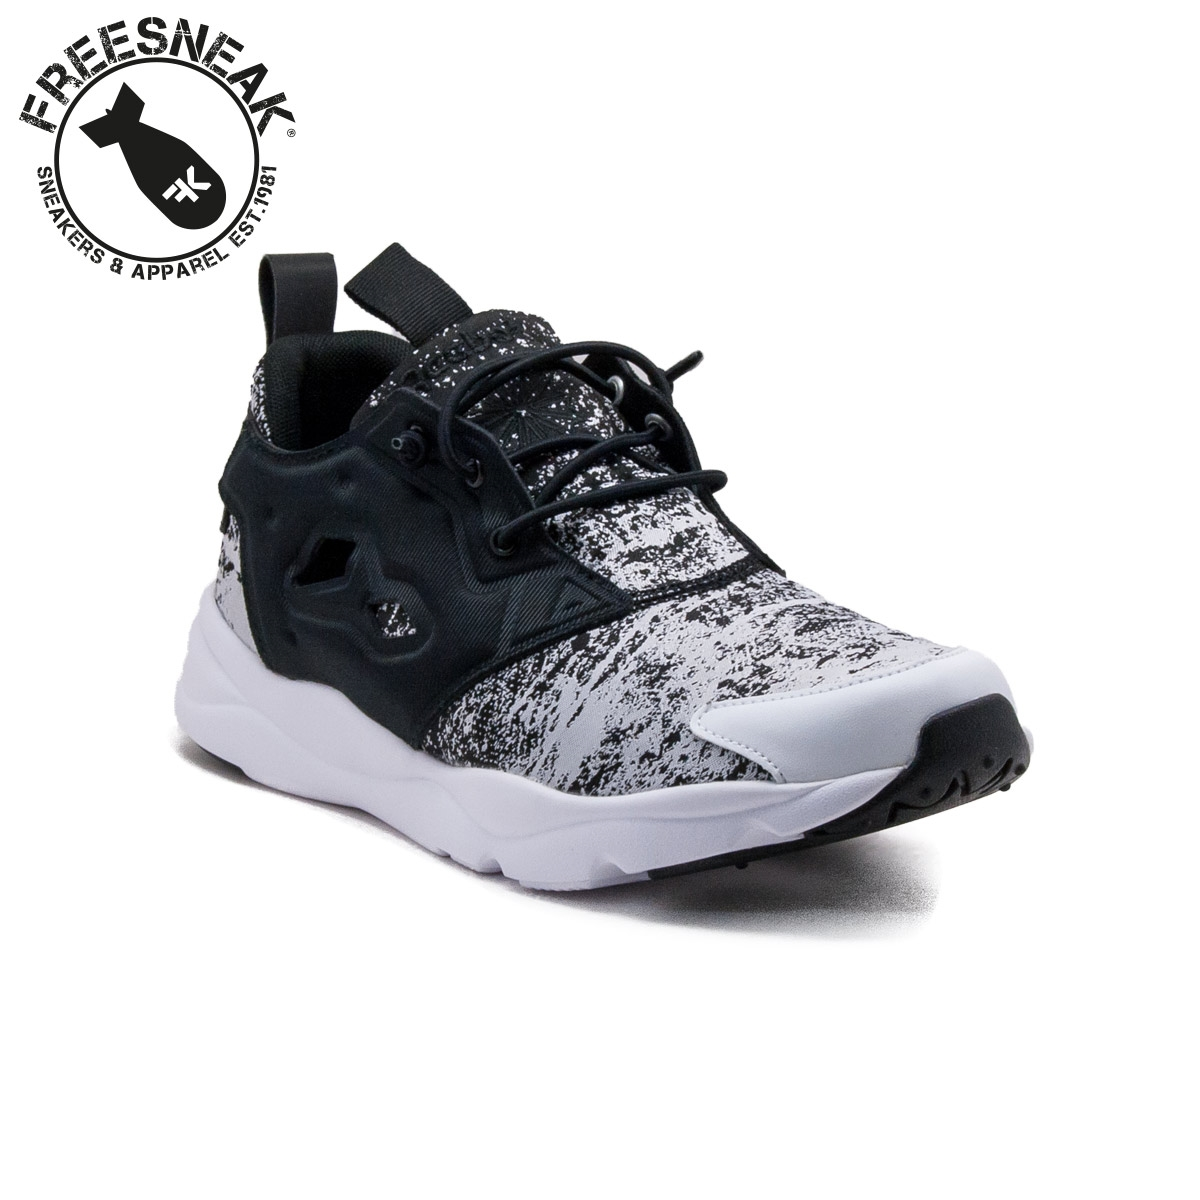 Reebok Furylite JF Sneakers In Black V69500